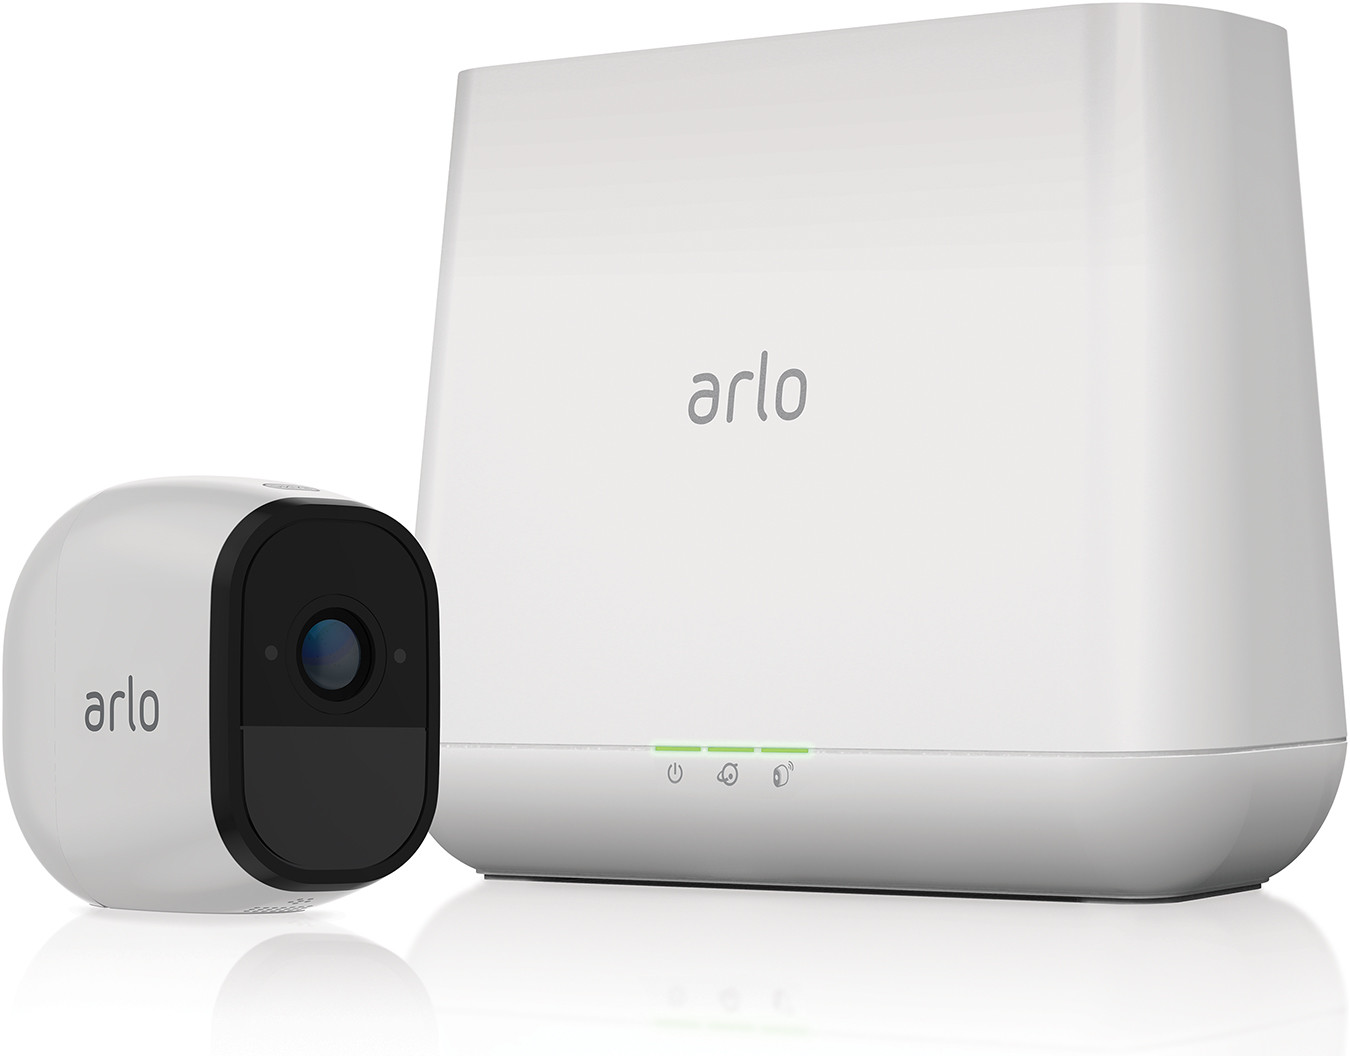 netgear arlo pro kabellose berwachungskamera mit akku. Black Bedroom Furniture Sets. Home Design Ideas